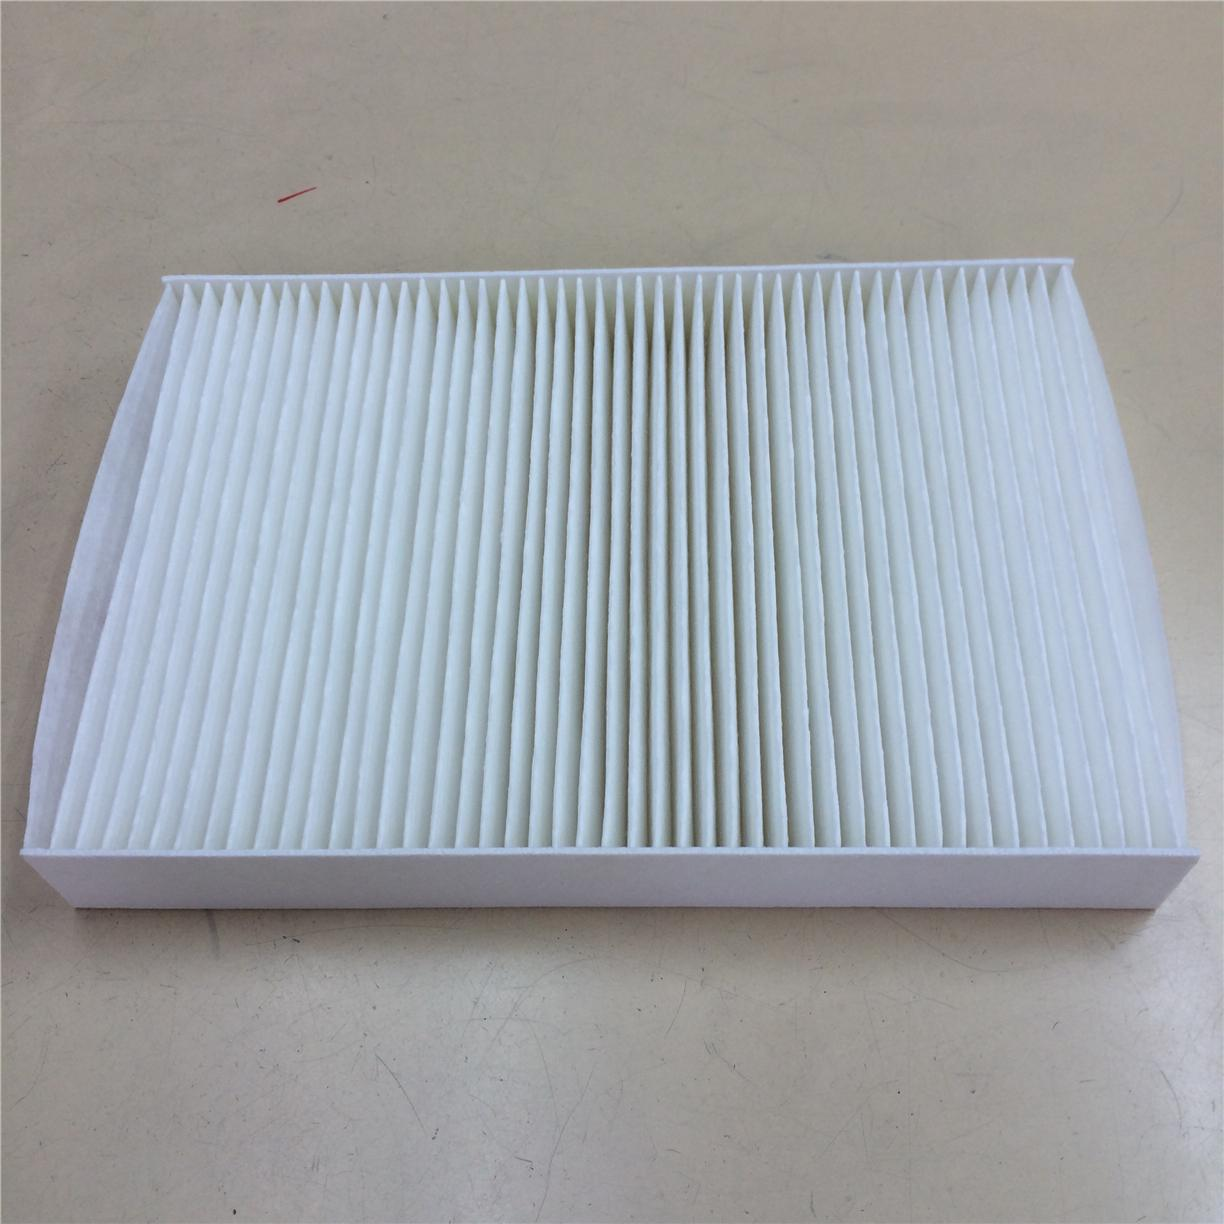 Renault Kangoo Cabin Blower Air Filter